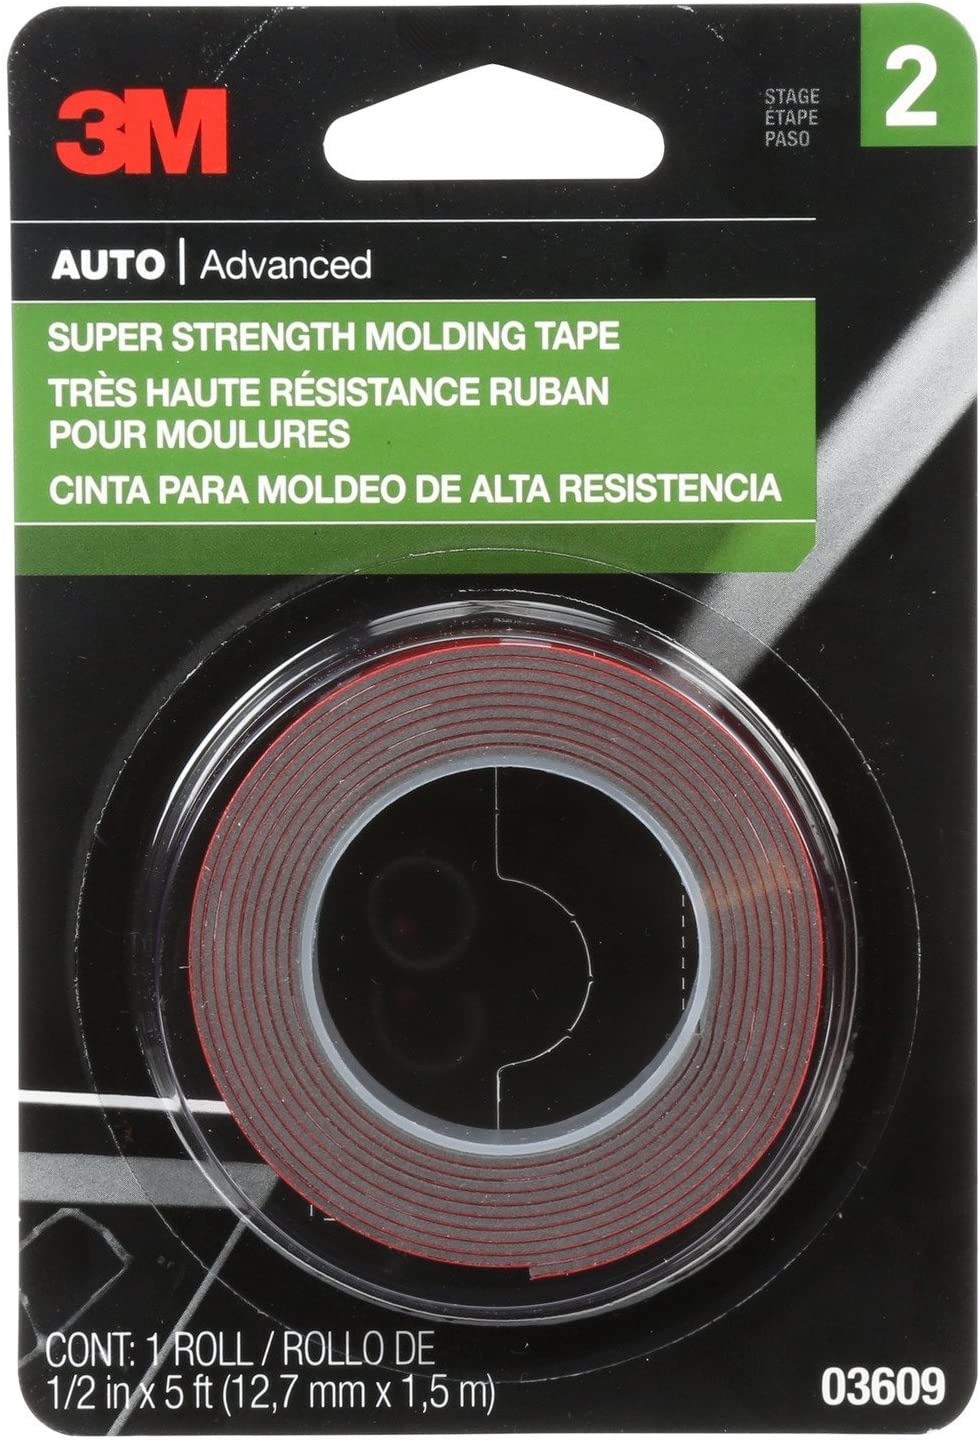 3M Super Strength Molding Tape, Highly Durable & Easy to Use, 1/2in wide x 5 feet in length, 1 roll